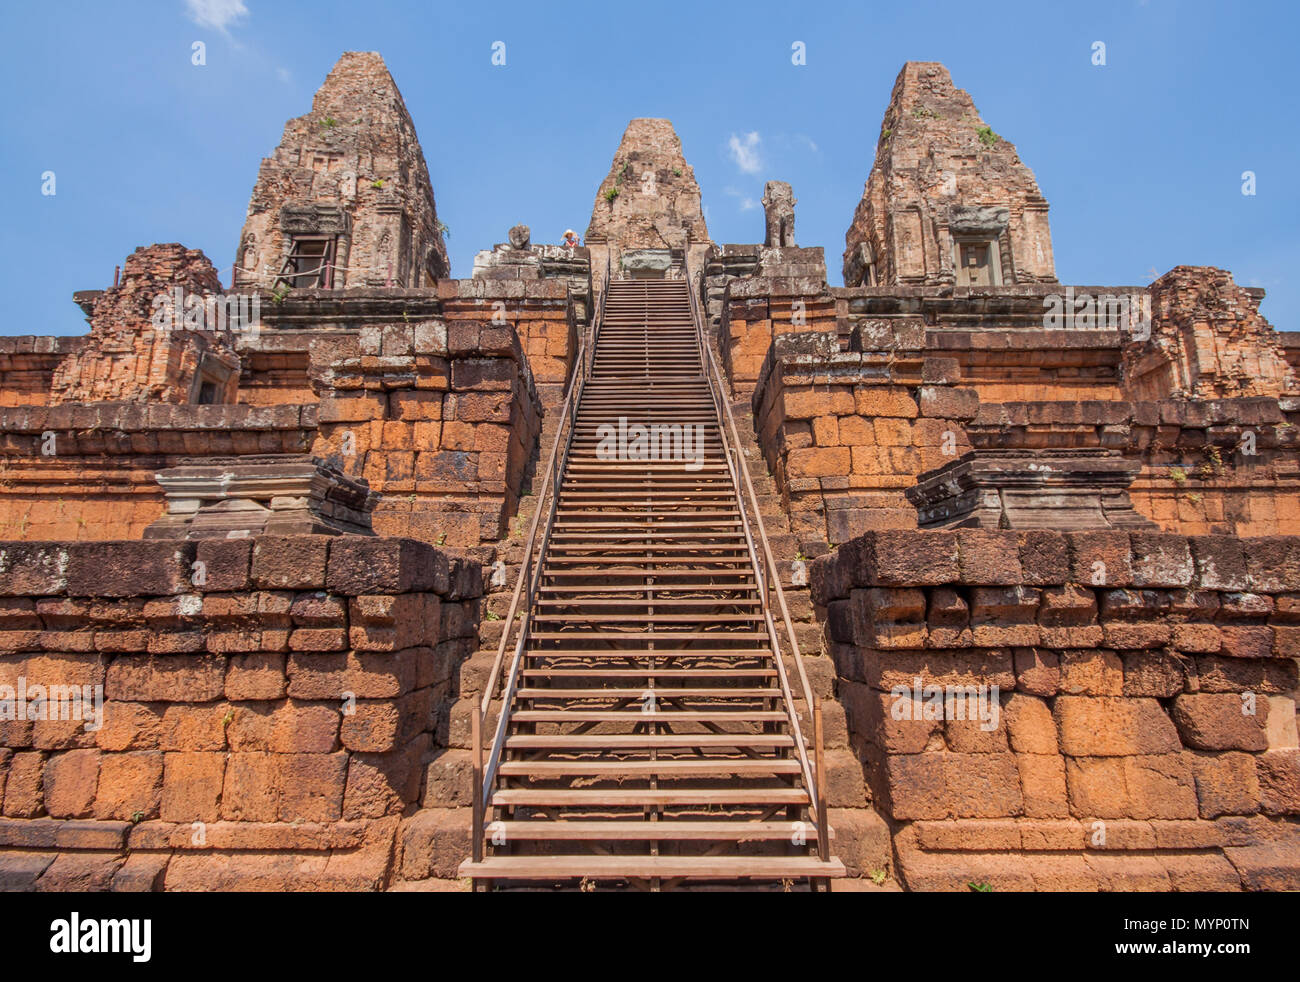 Angkor Thom, Cambodia - one the largest religious monument in the world, former capital of Khmer empire, and famous for the faces carved in the rocks - Stock Image